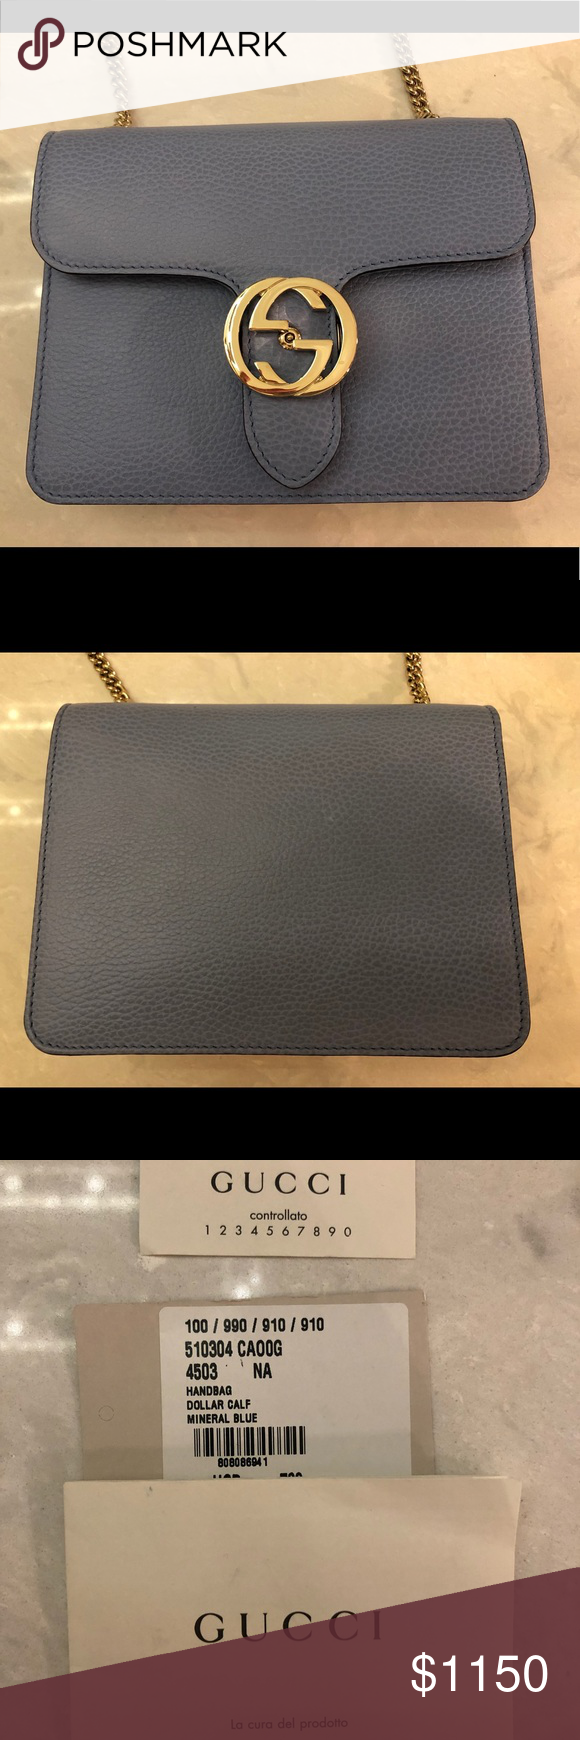 8de5fc1913b Gucci interlocking GG Bag. New with tags Brand new mineral blue Gucci  Interlocking GG bag. Smoke free home. Authentic. This is Not the wallet on a  chain.